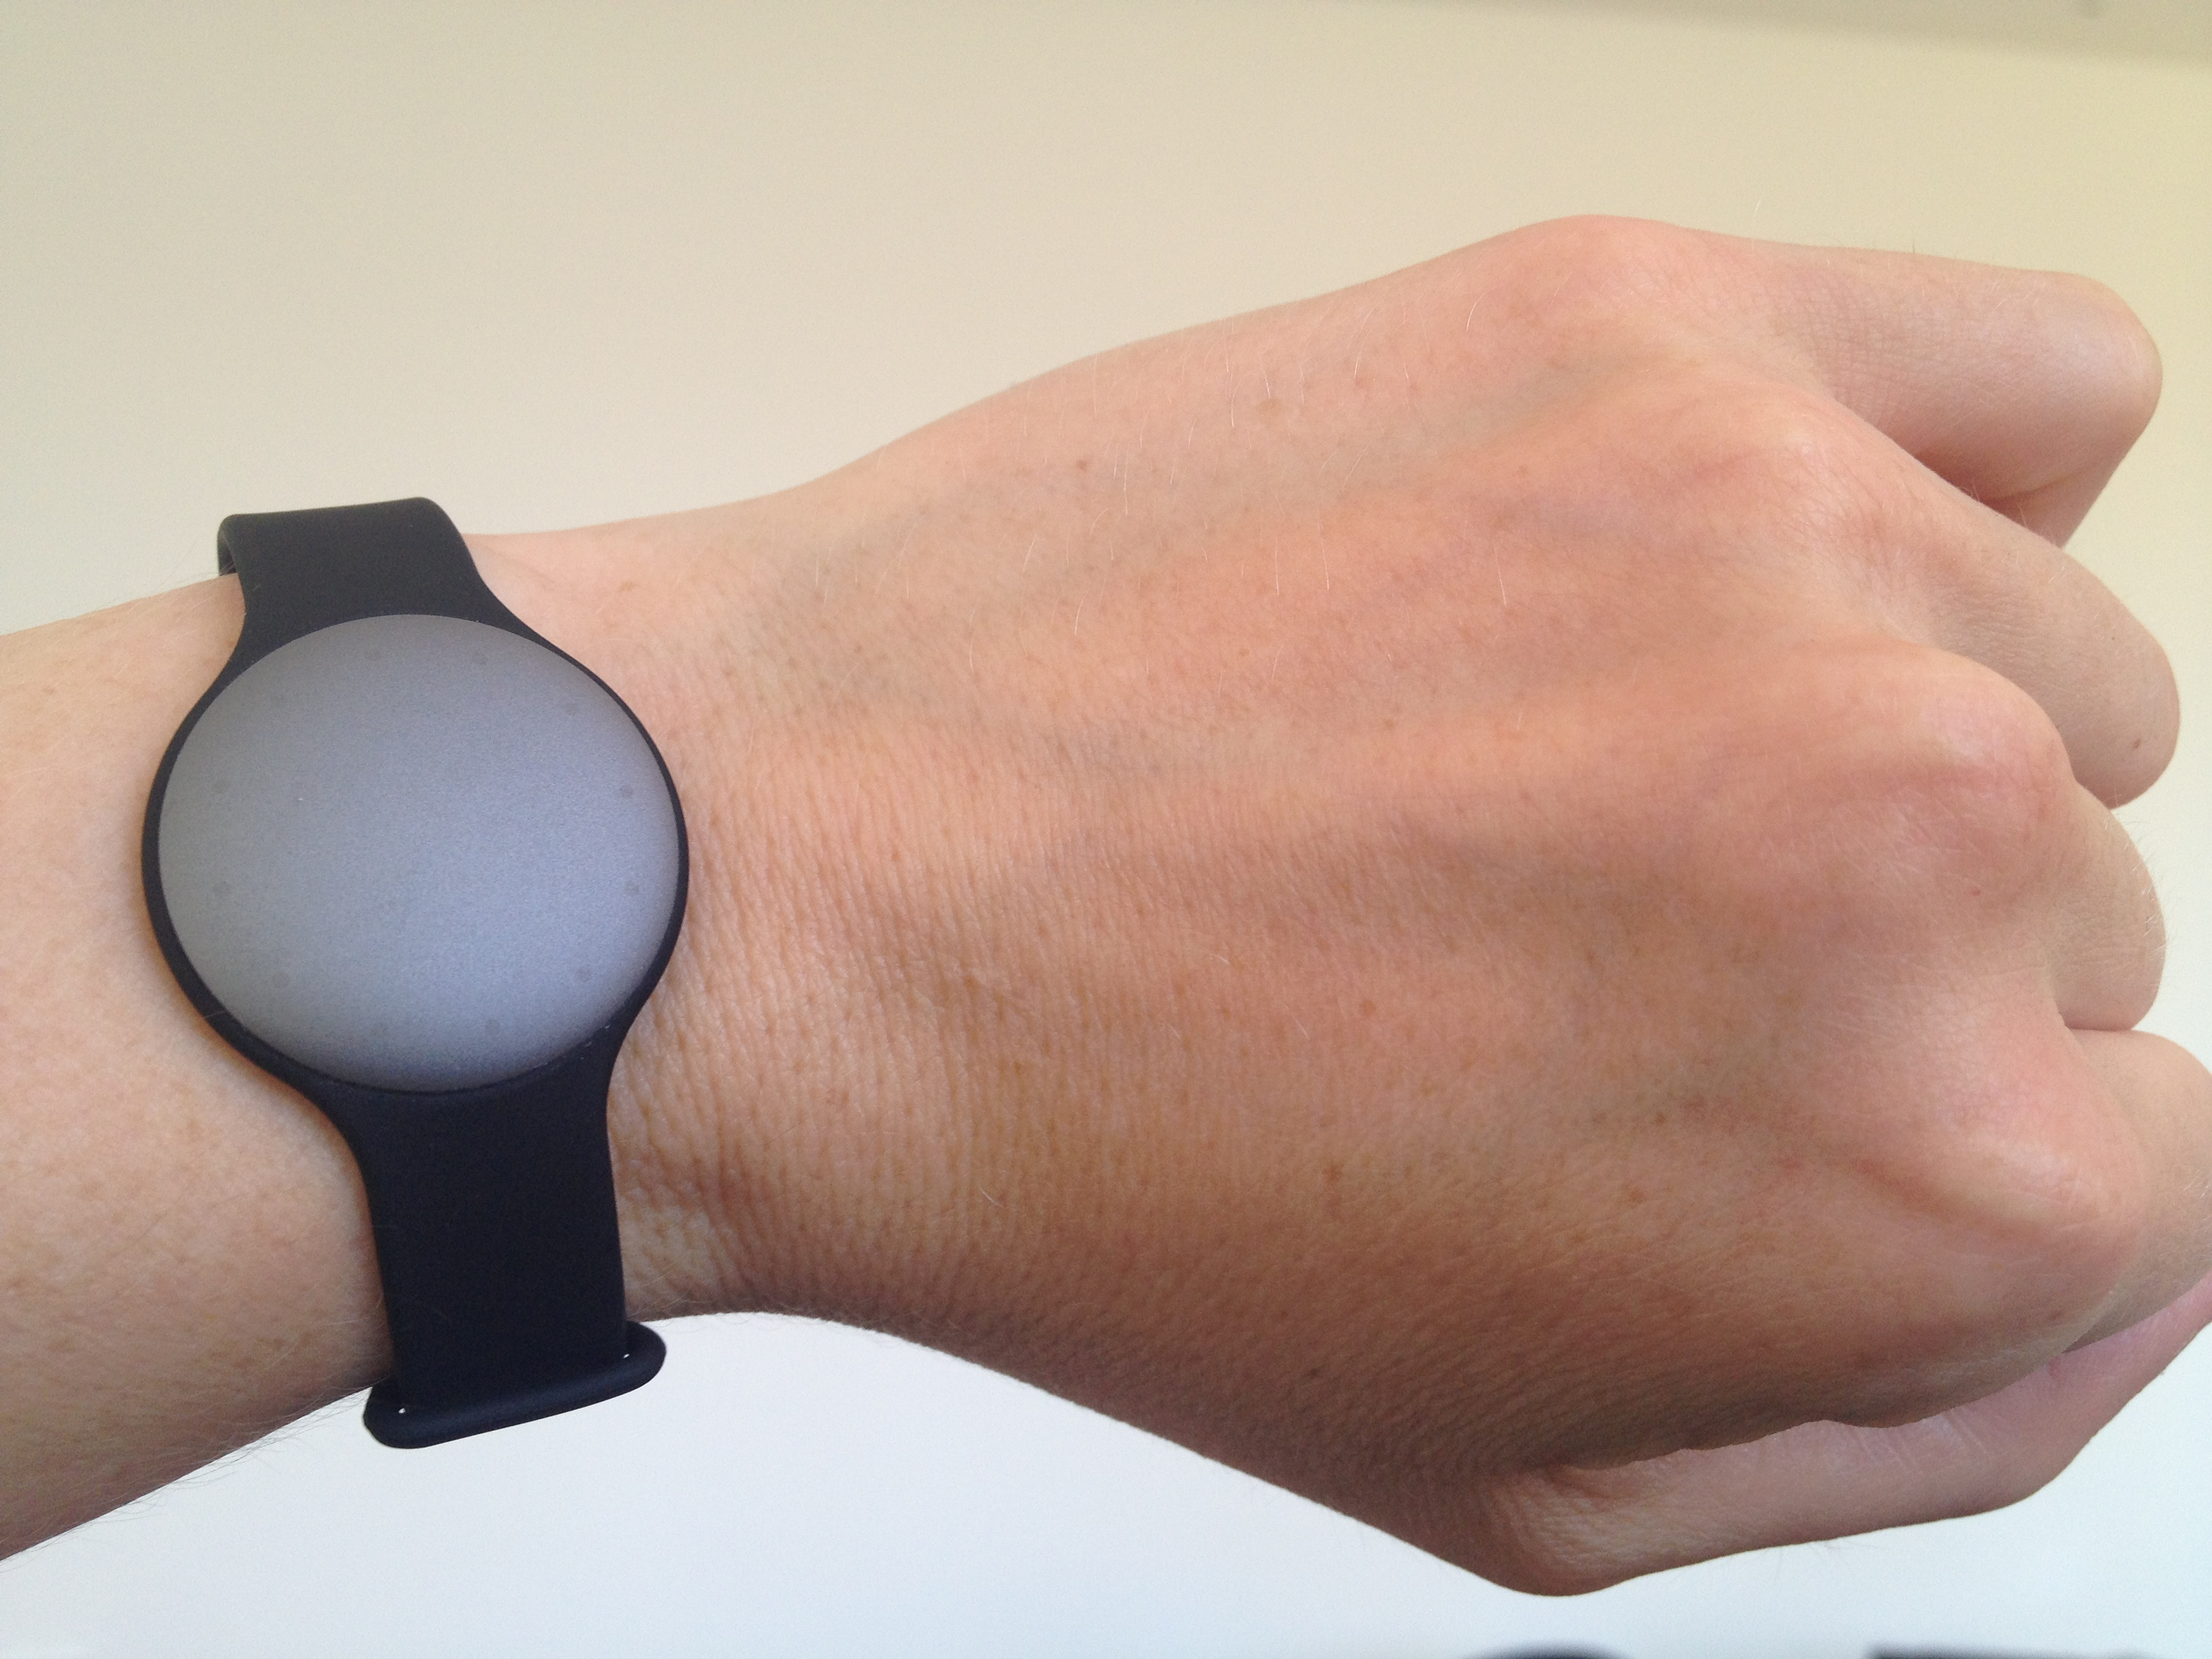 The Shine in the sports watch accessory